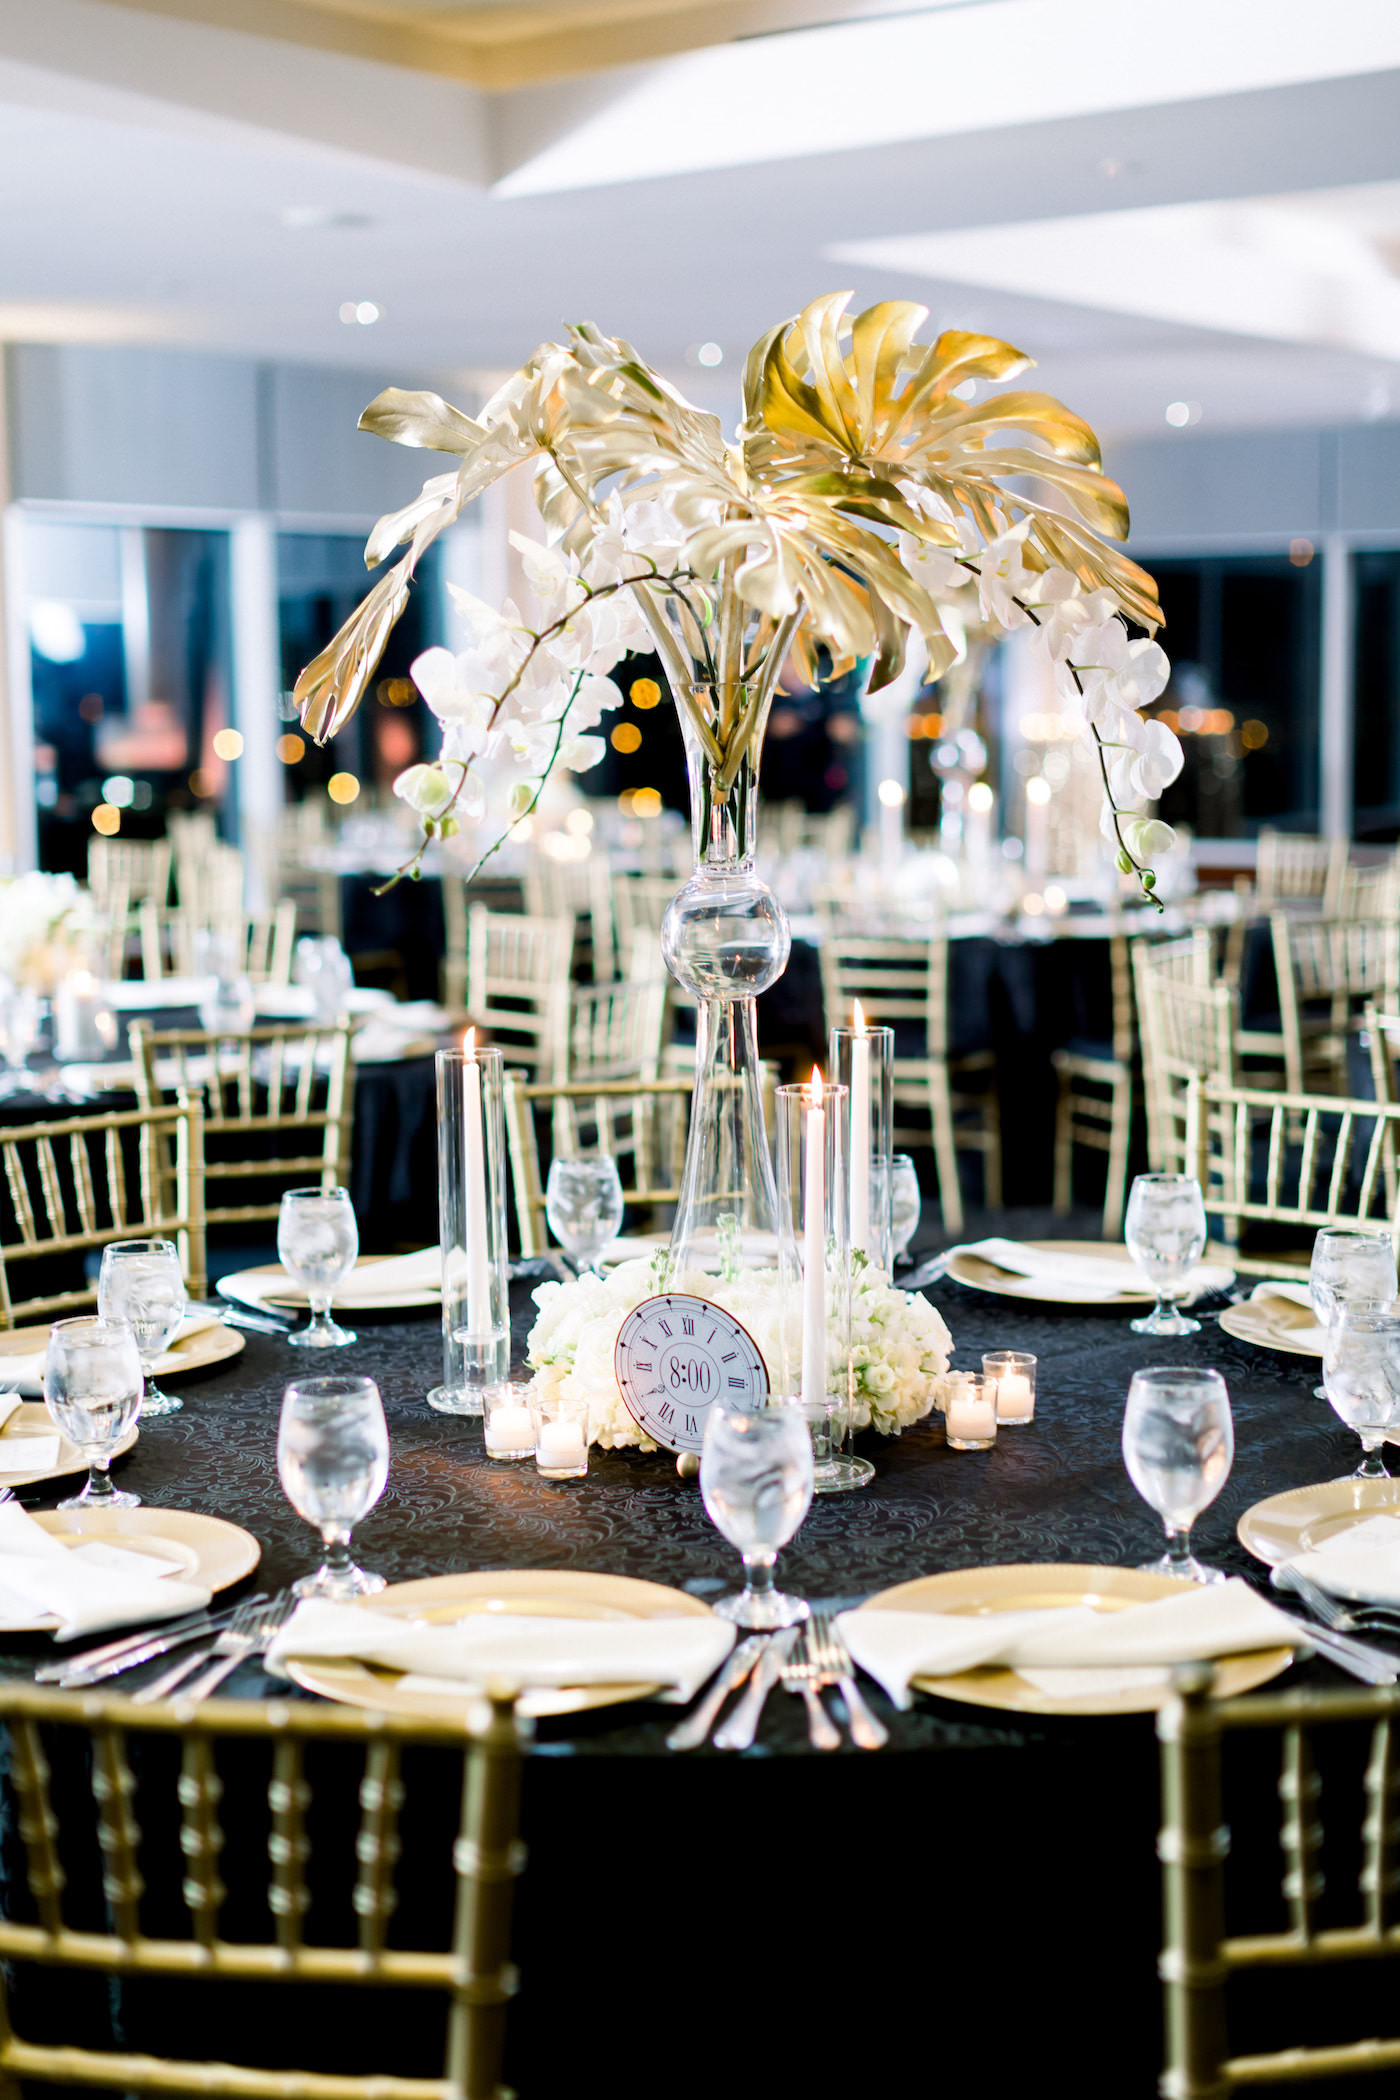 Formal New Year's Eve Wedding Reception Decor, Round Tables with Black Linens, Gold Chiavari Chairs, Tall Vase with Gold Painted Palm Monstera Leaves and White Orchids Centerpieces, White and Gokd Clocks | Wedding Photographer Shauna and Jordon Photography | Tampa Bay Wedding Rentals A Chair Affair | Wedding Planner UNIQUE Weddings + Events